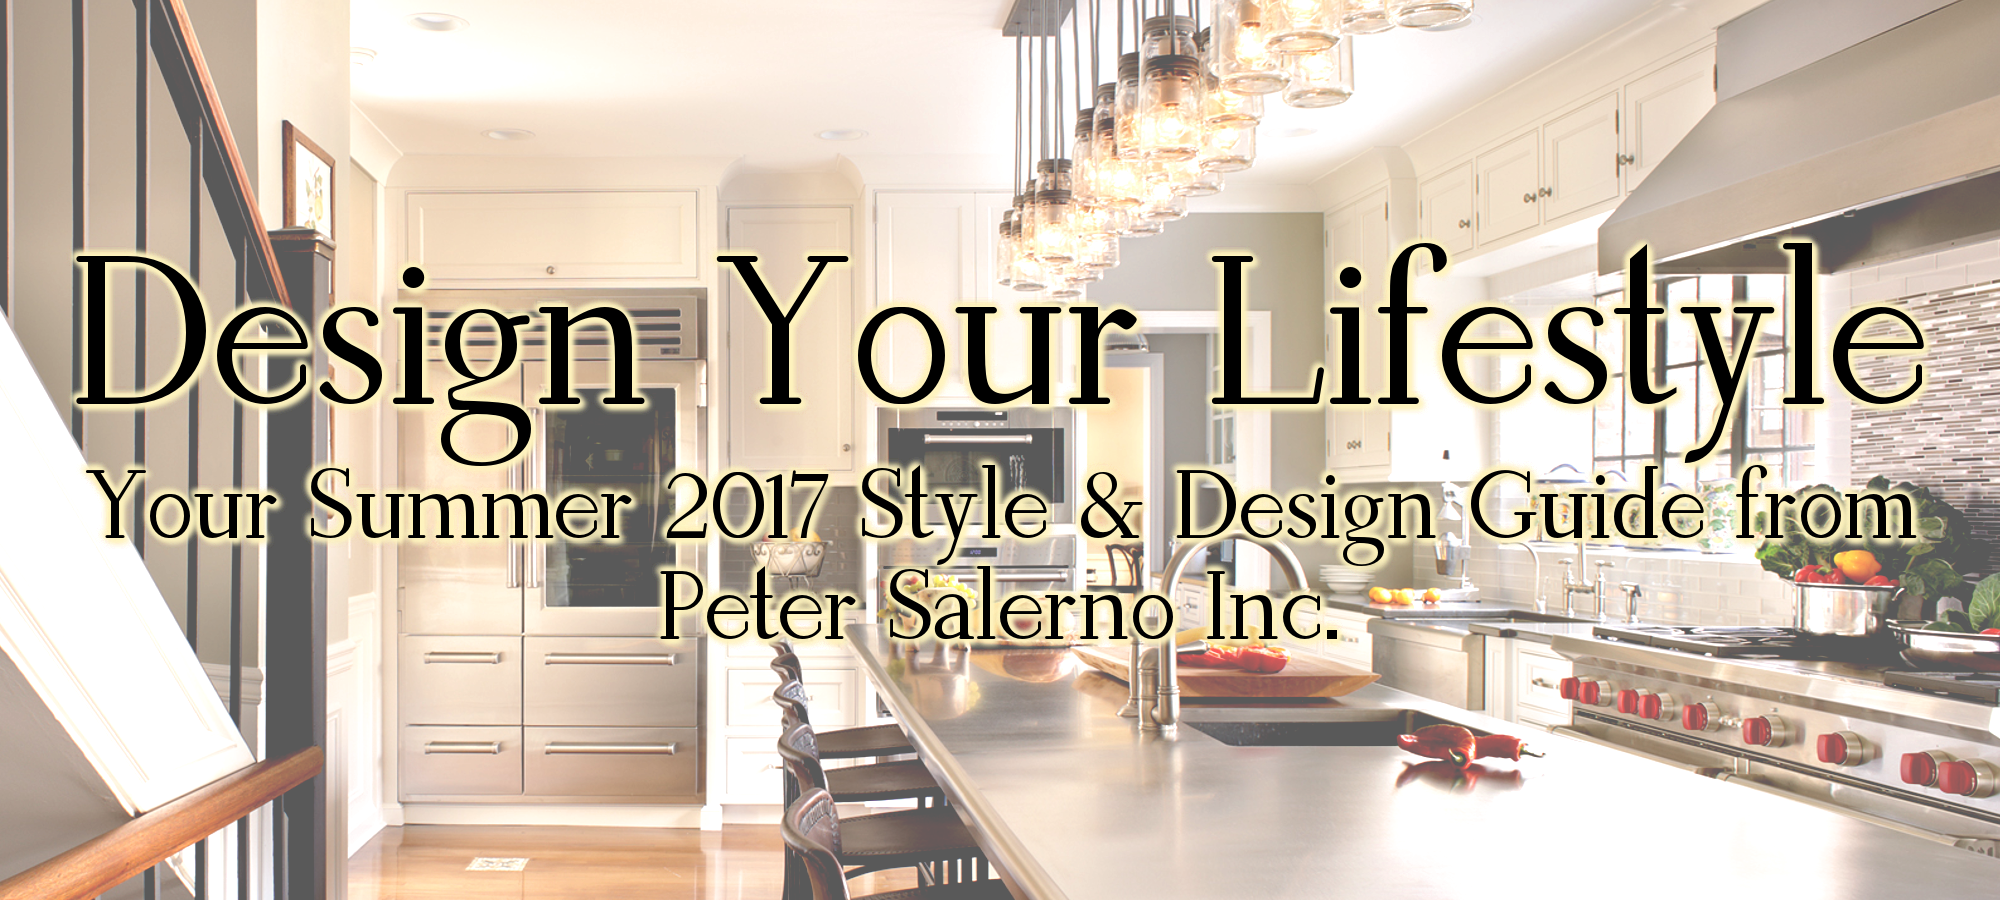 Design Your Lifestyle.